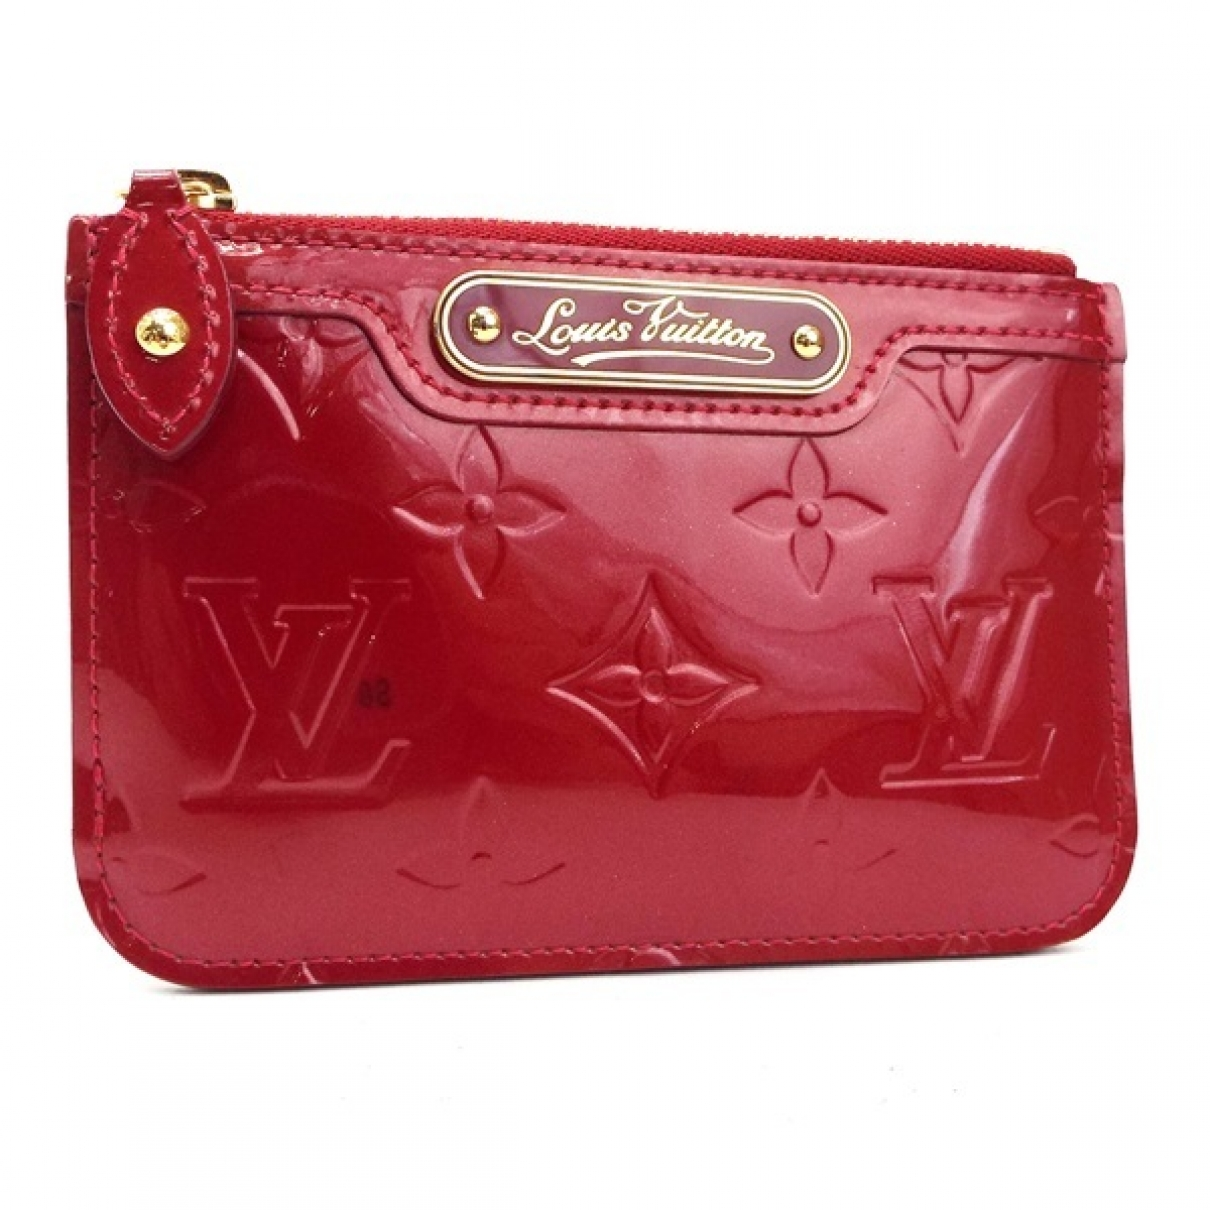 Louis Vuitton \N Red Patent leather Purses, wallet & cases for Women \N